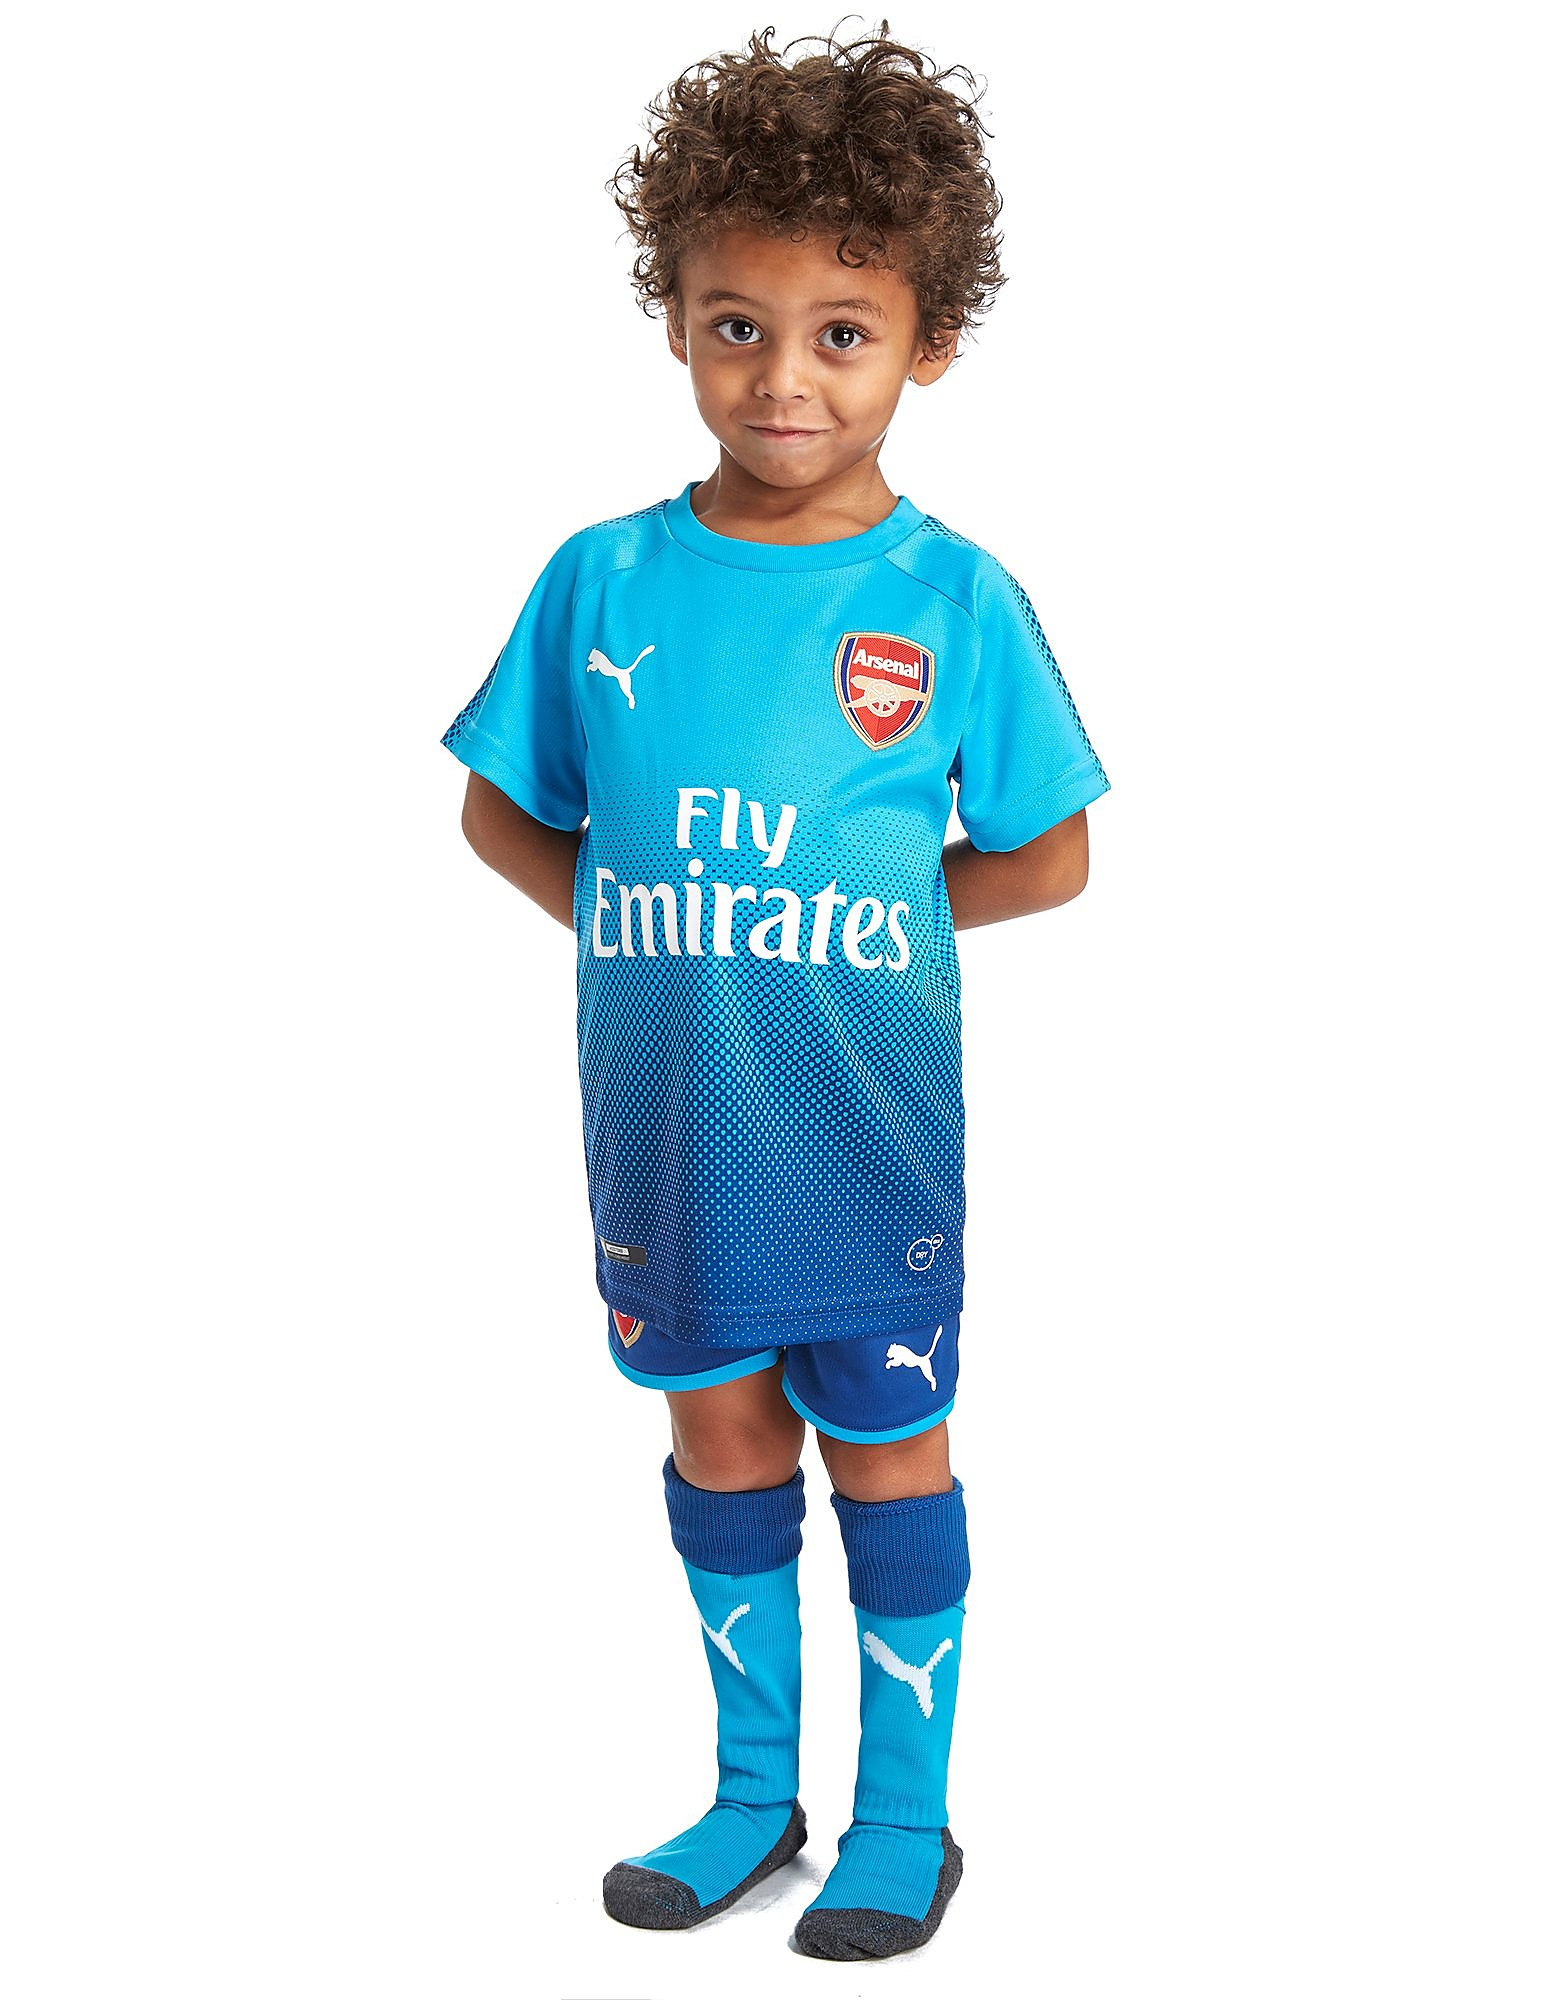 PUMA Arsenal FC 2017/18 Away Kit Children